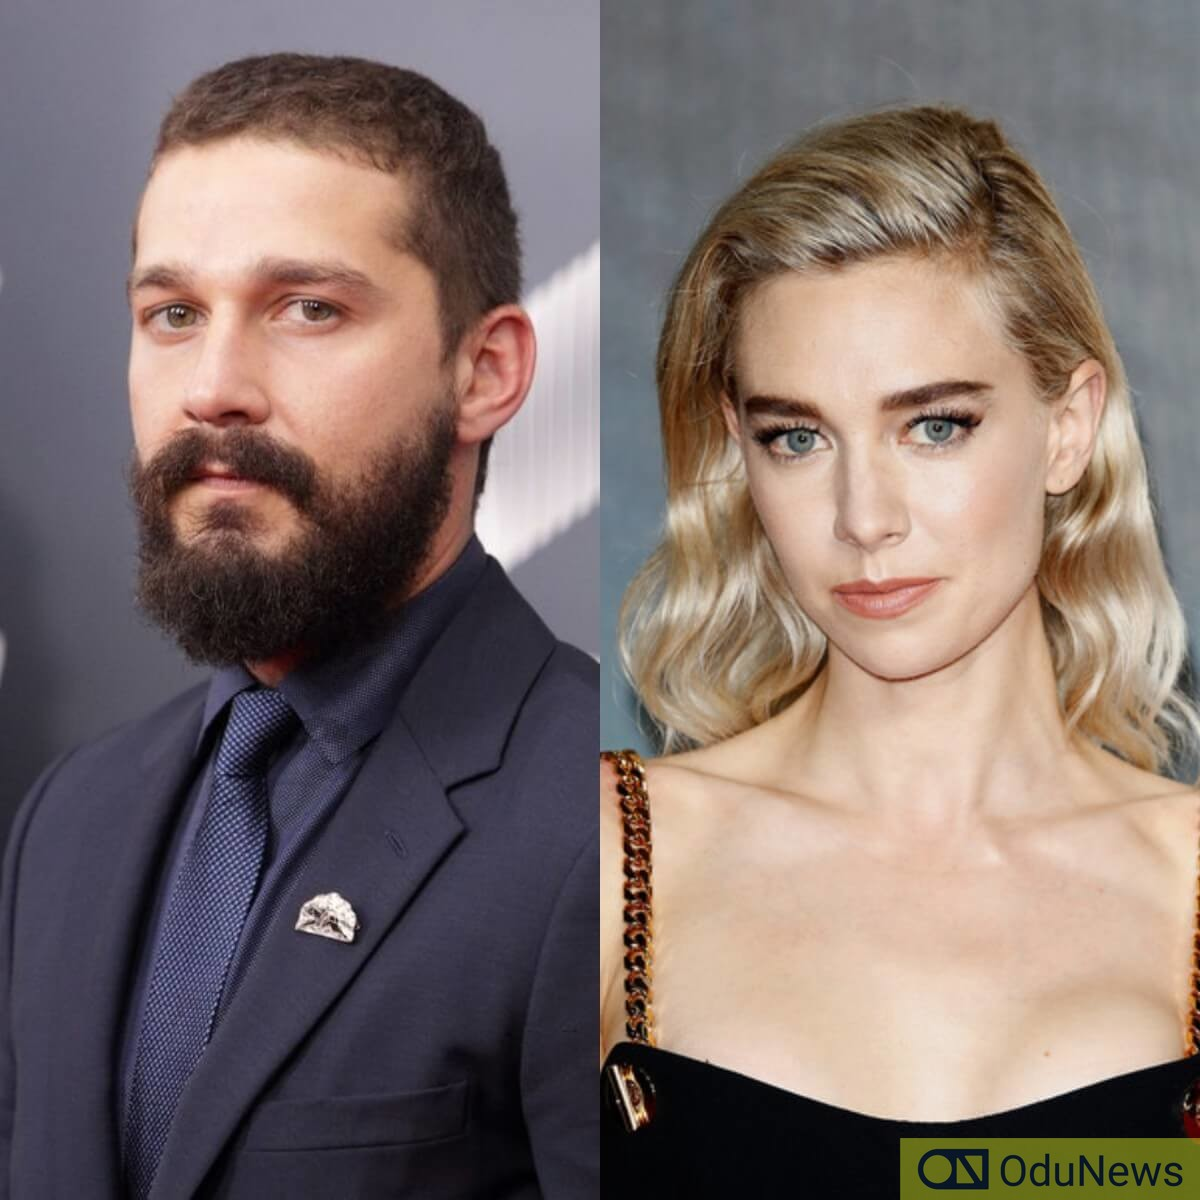 Shia LaBeouf and Vannessa Kirby will play a couple in the independent film